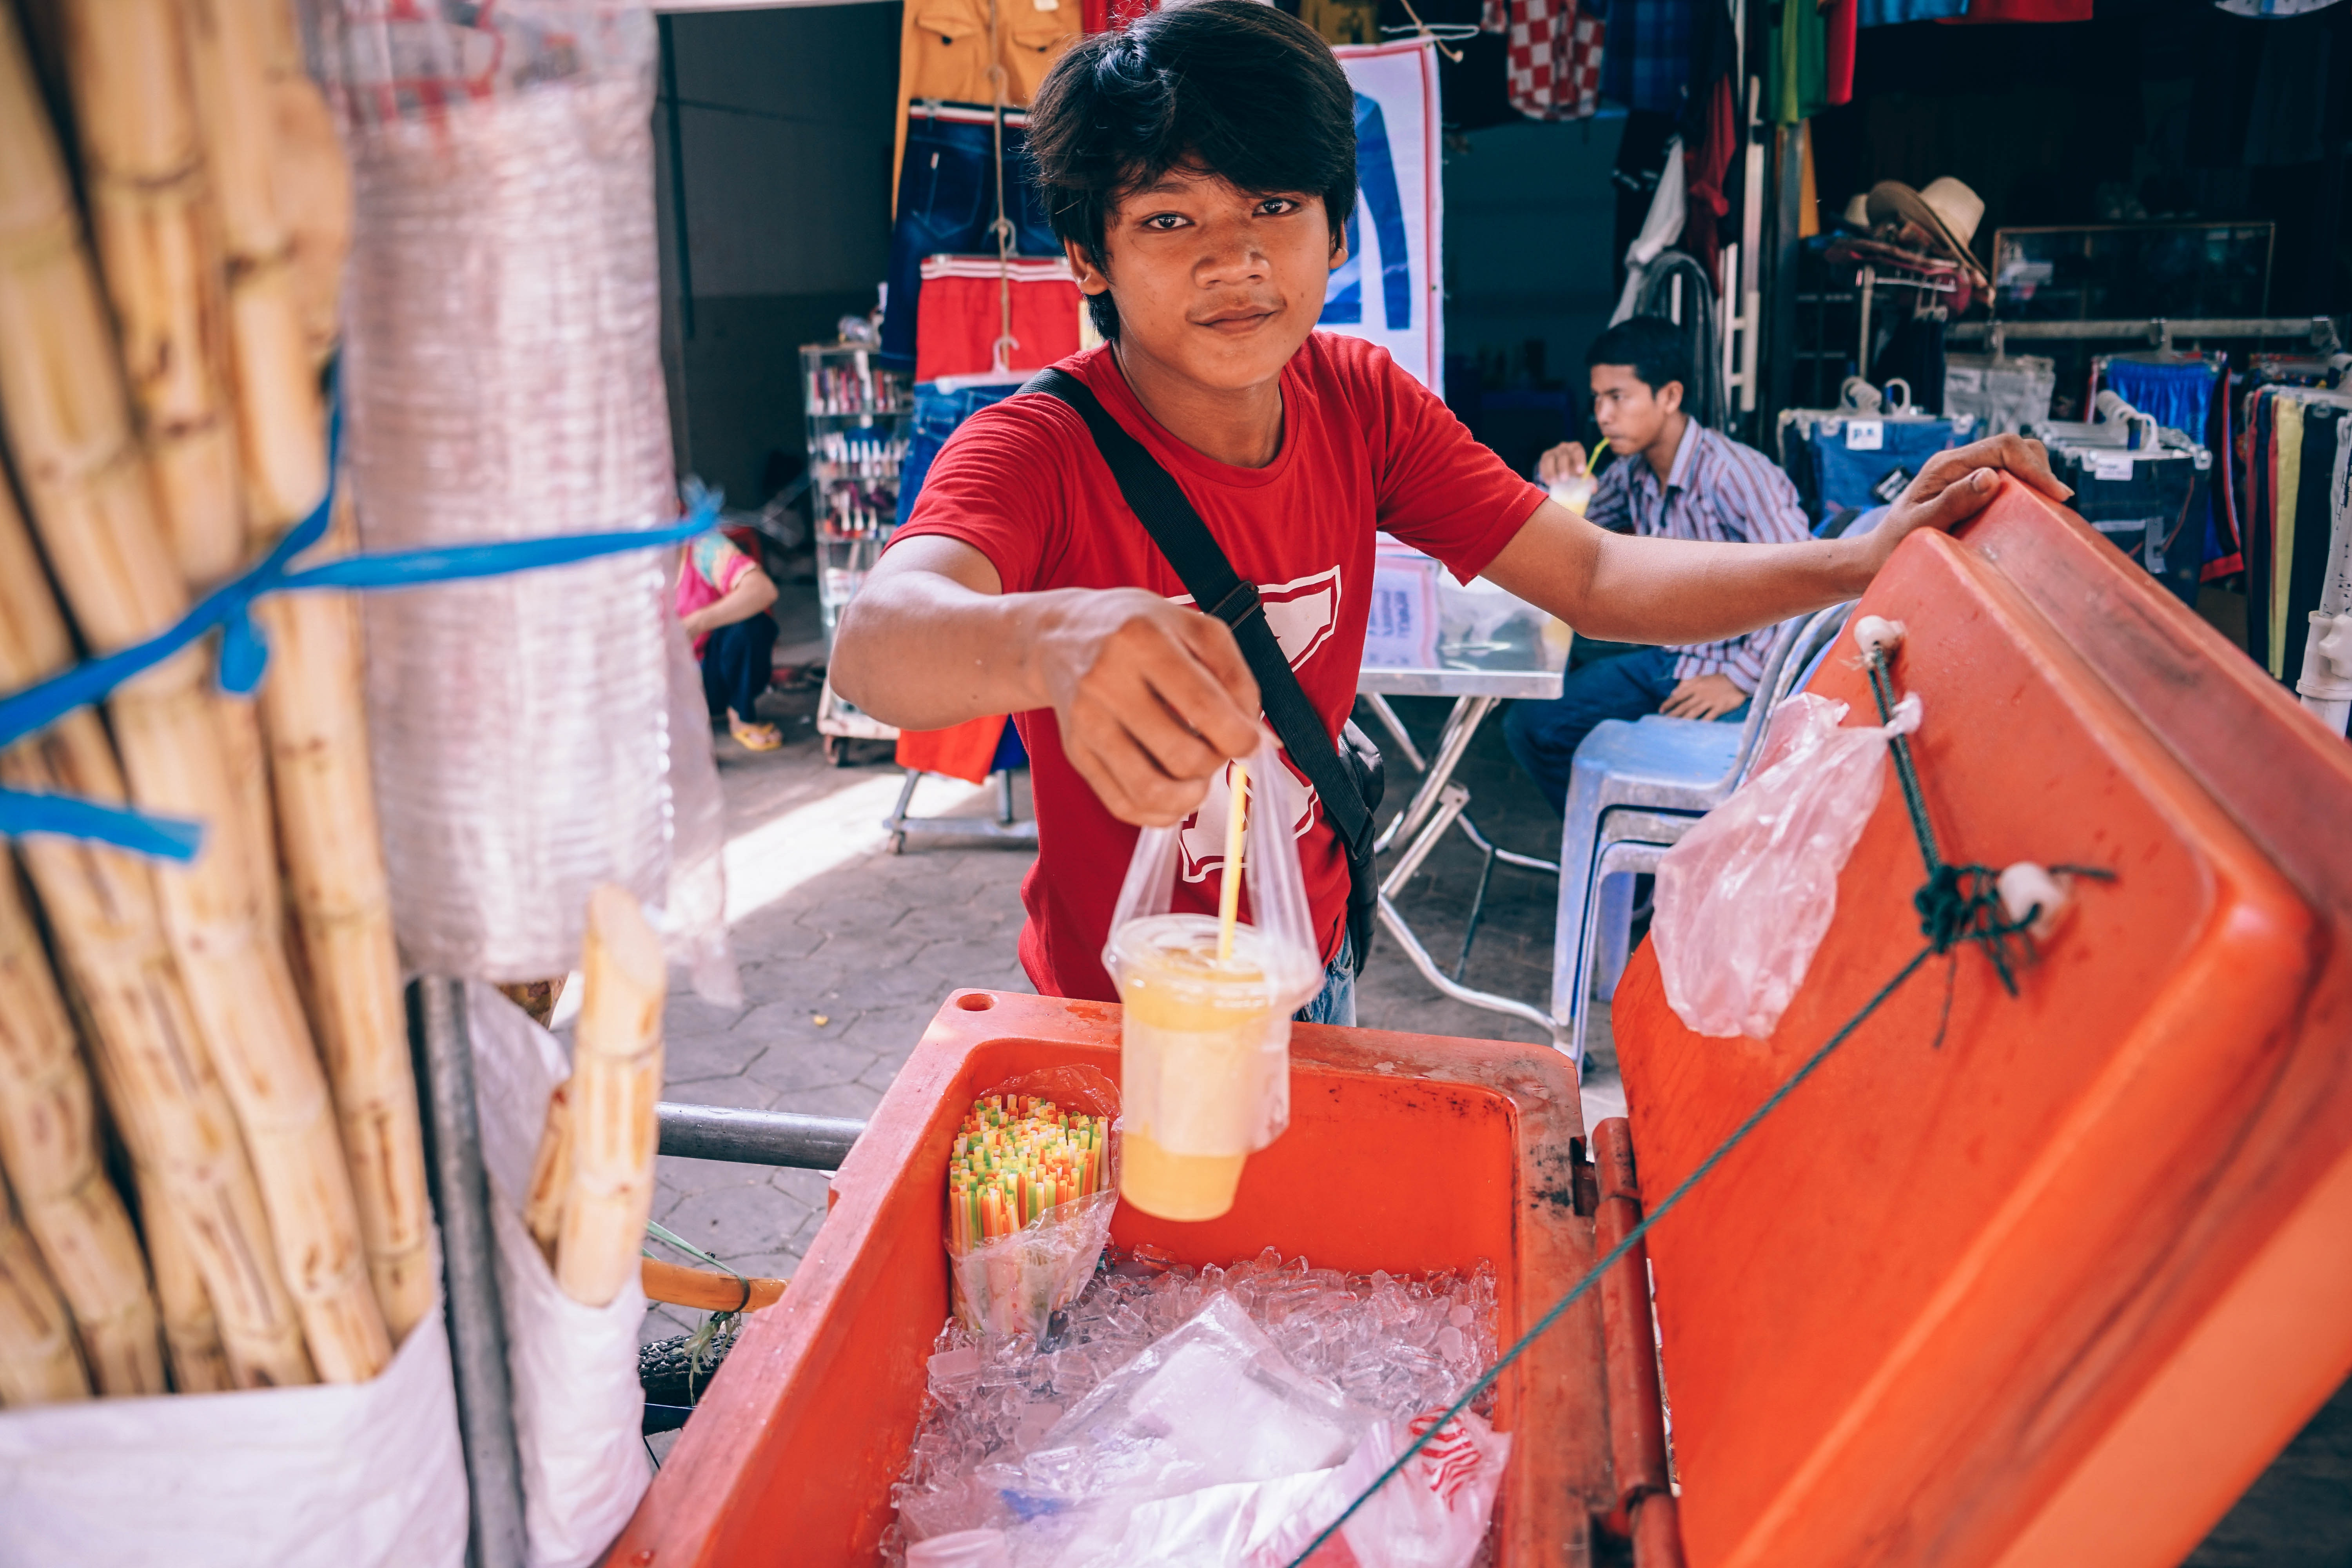 Man holding plastic cup photo